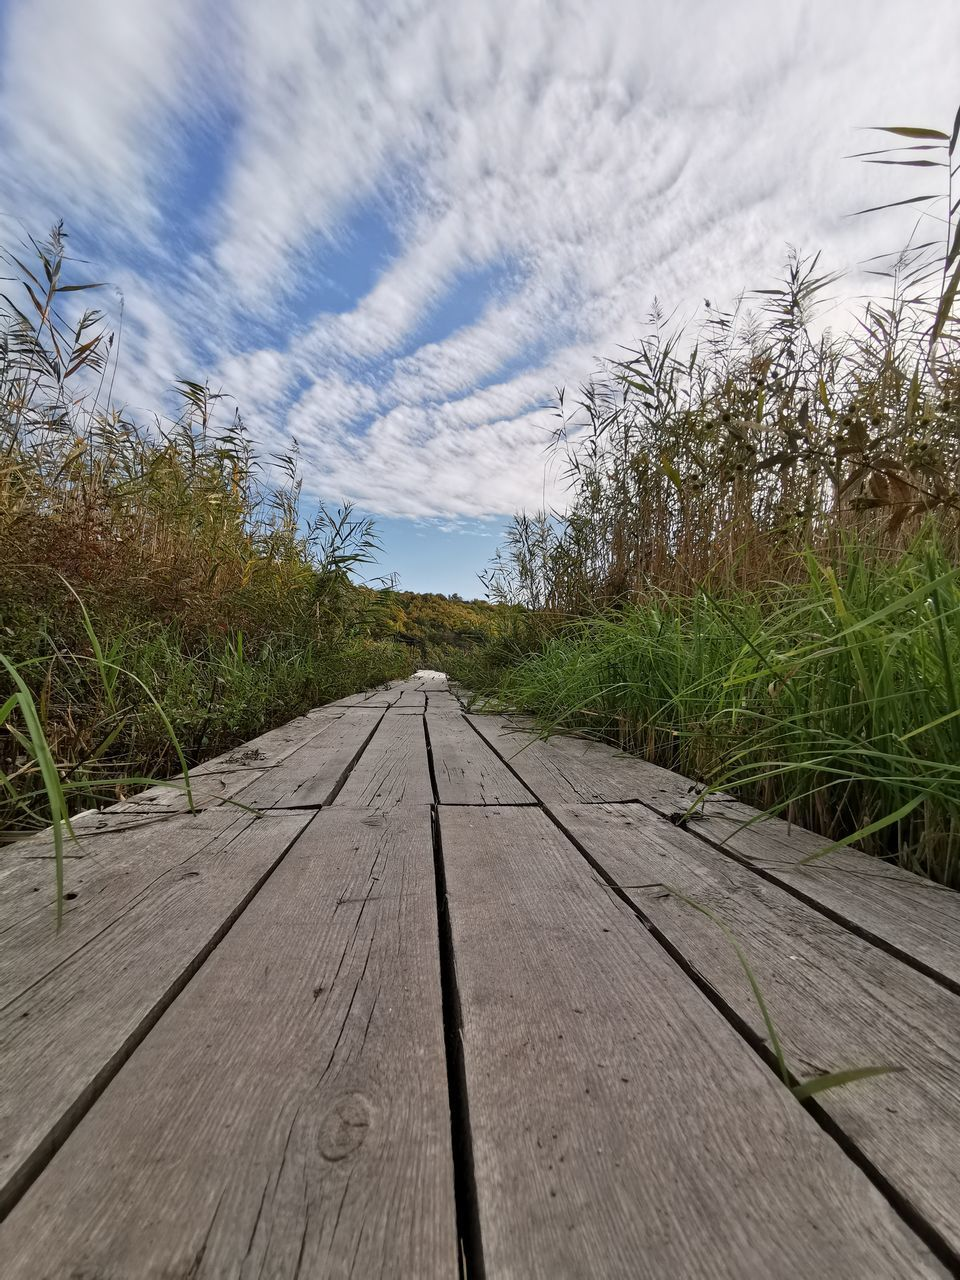 sky, plant, wood - material, nature, the way forward, grass, direction, cloud - sky, no people, day, transportation, diminishing perspective, boardwalk, footpath, tree, tranquility, land, outdoors, vanishing point, landscape, wood, surface level, long